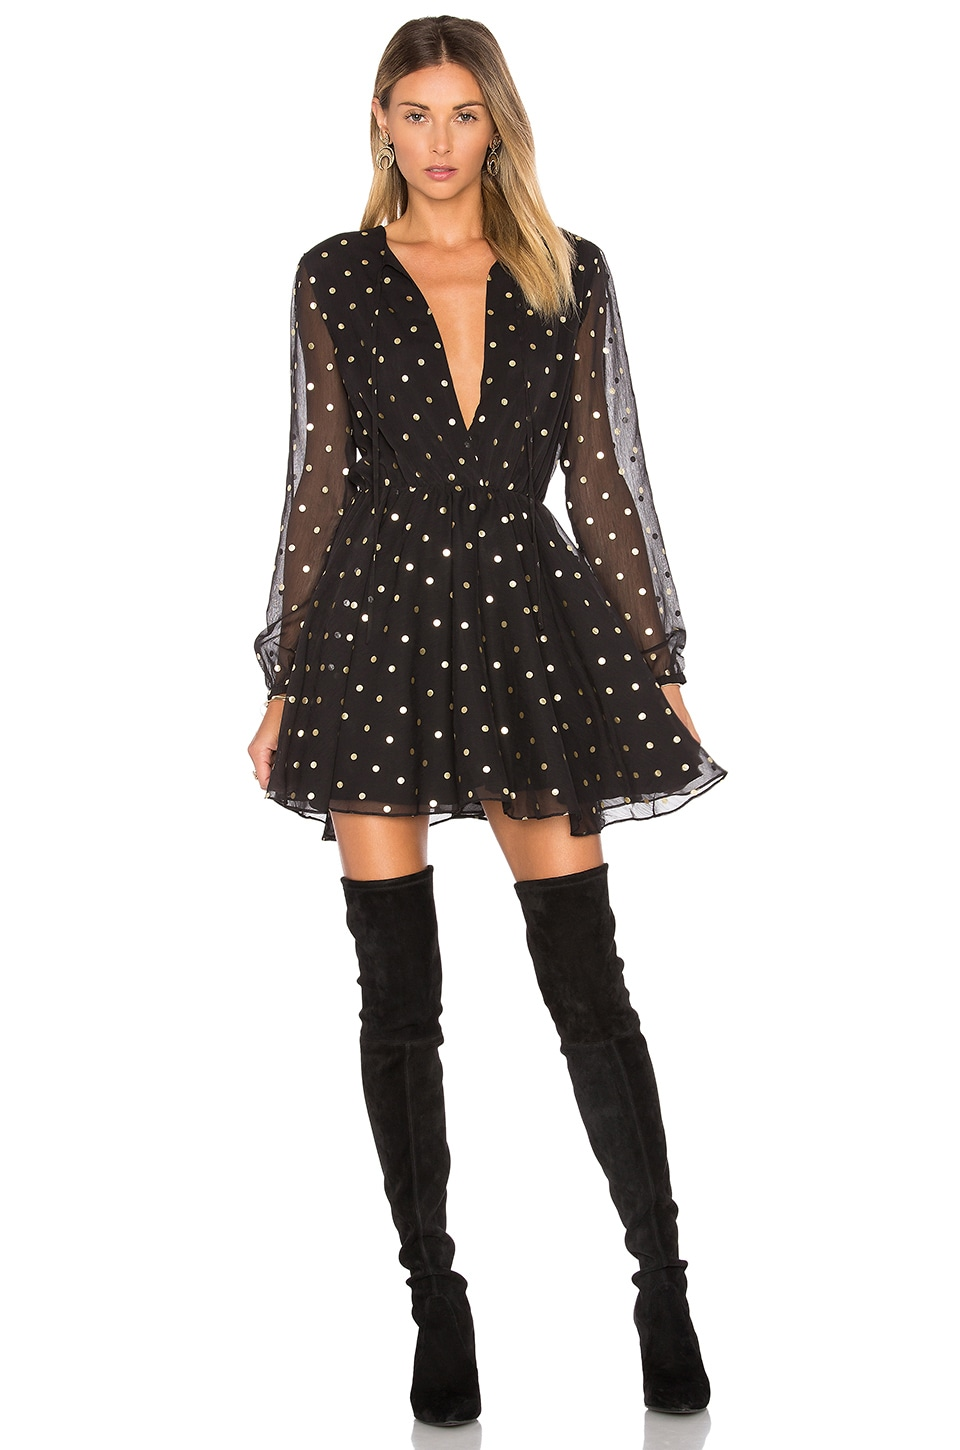 Lovers + Friends Hayley Dress in Gold Dot